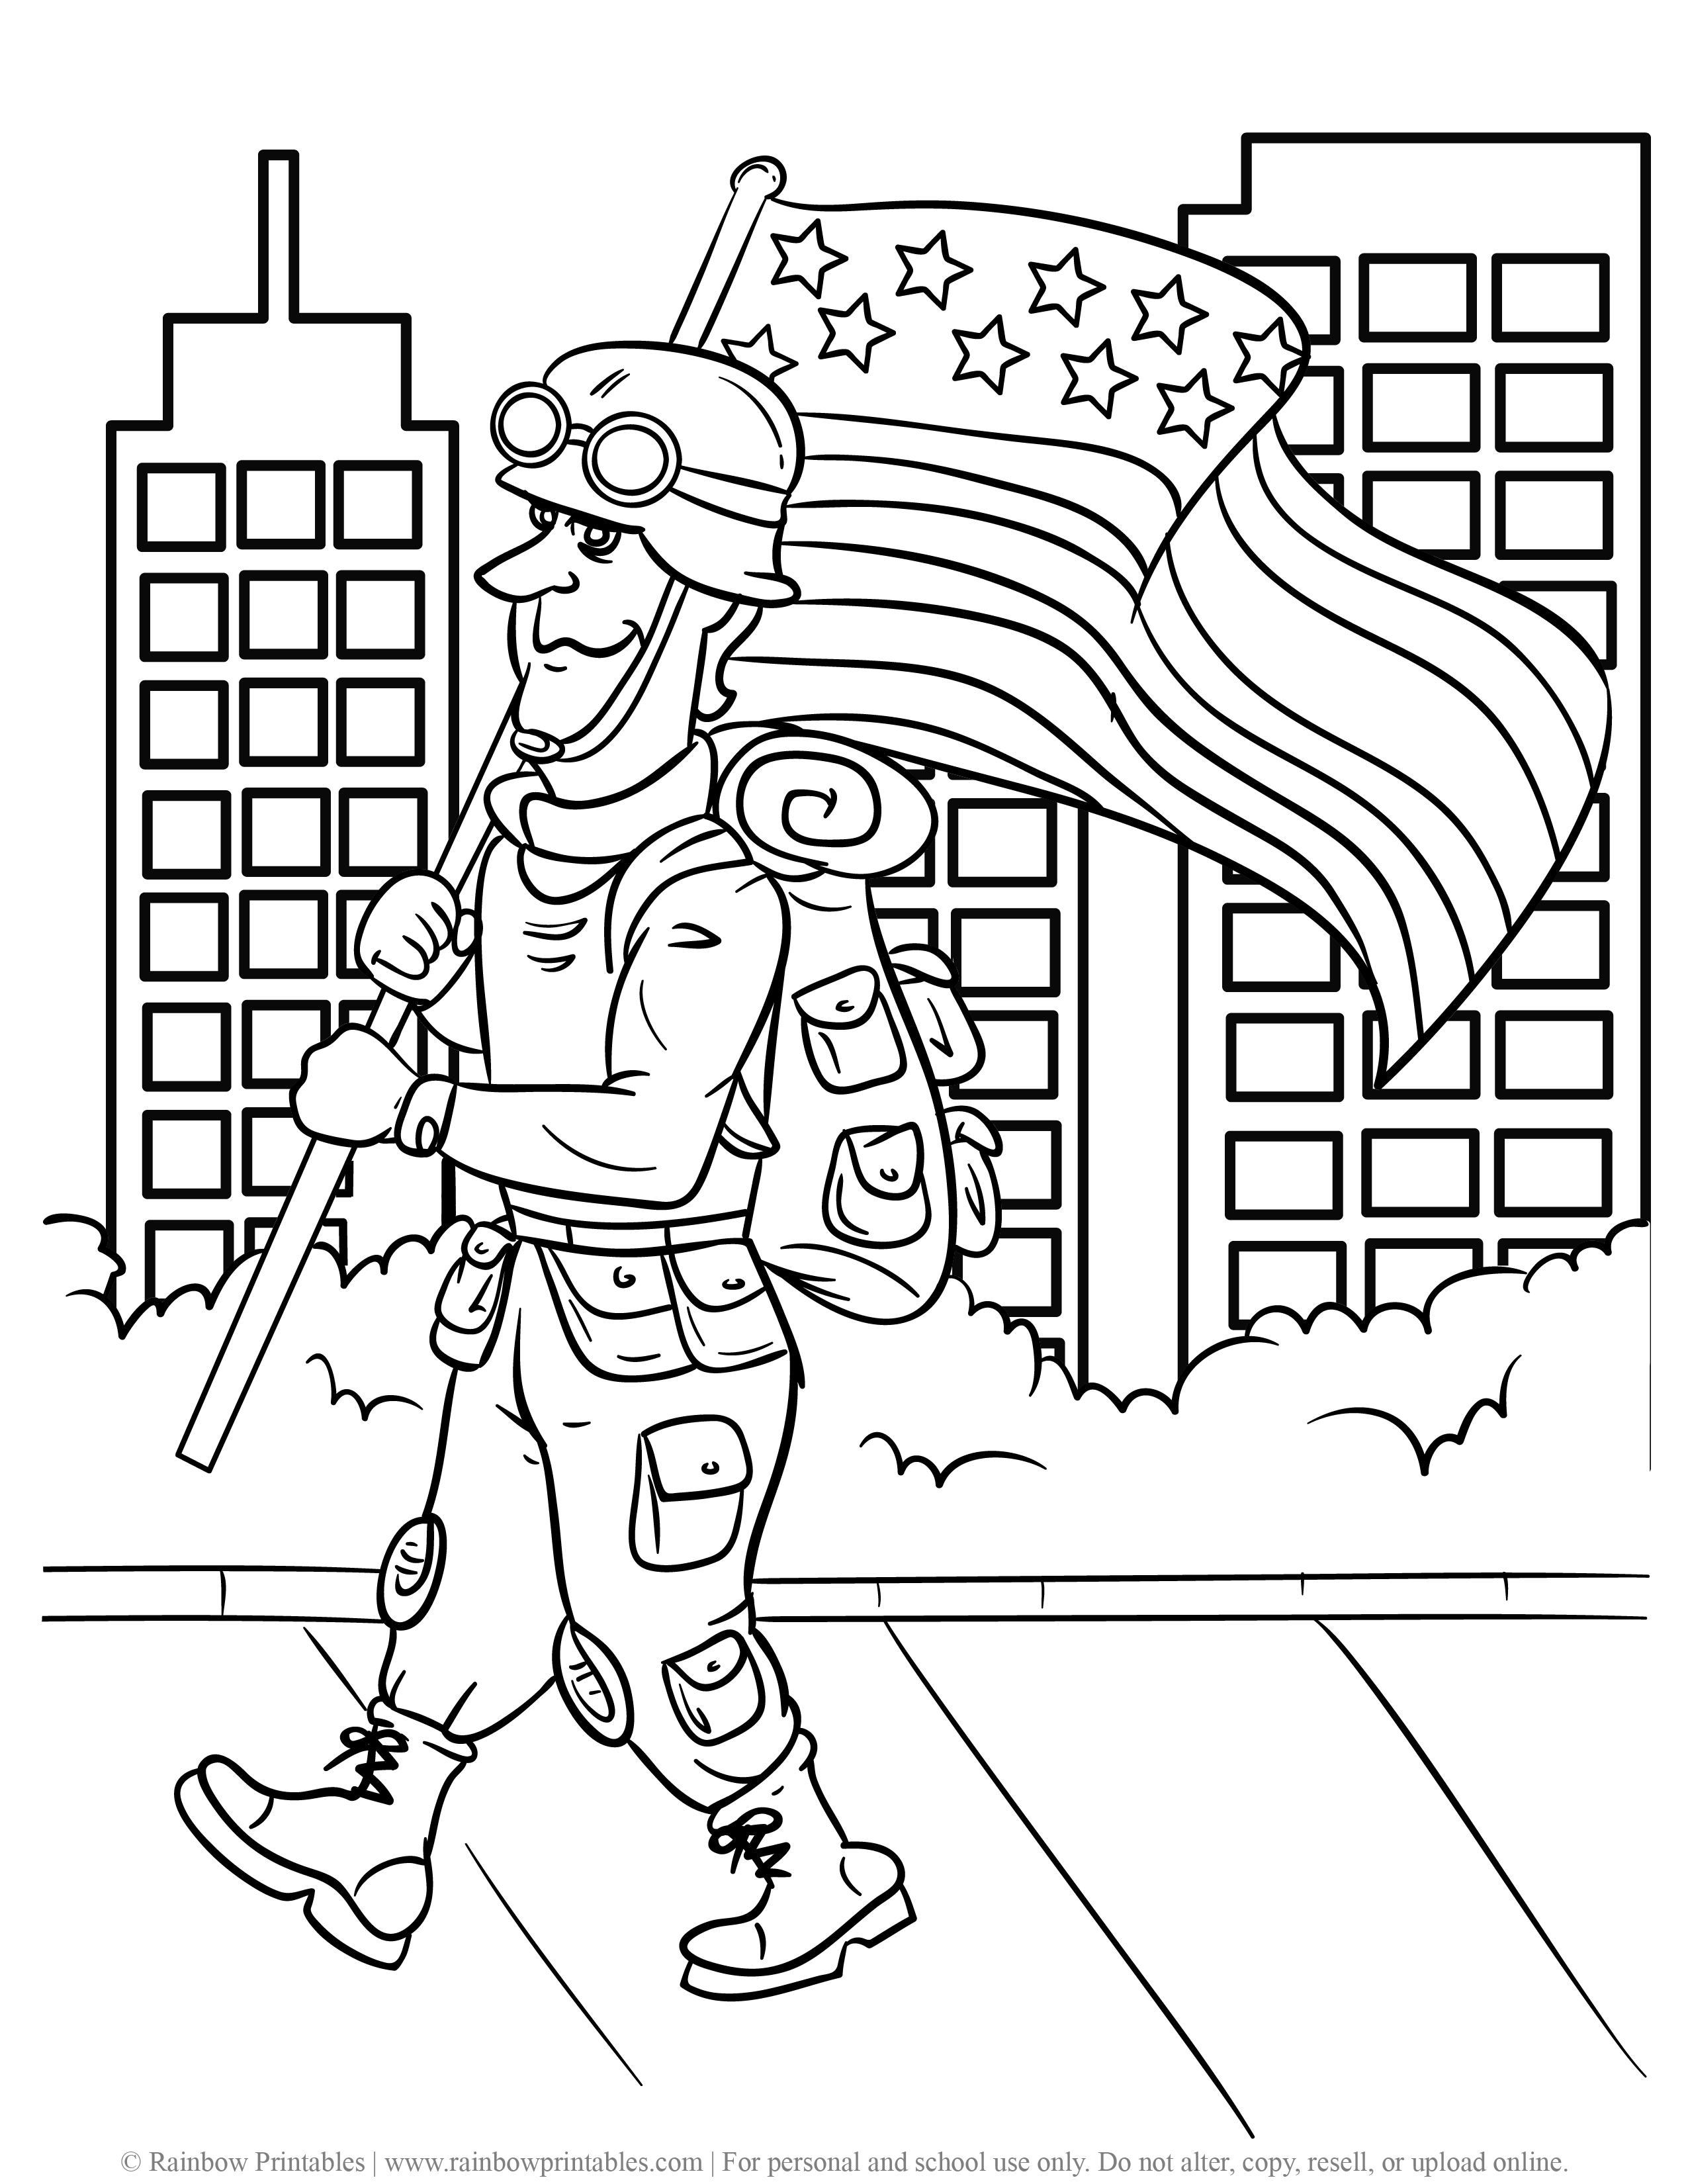 US American Soldier Army Navy Coloring Pages For Kids Patriotic July 4th Independence Day Simple Easy Coloring Printables